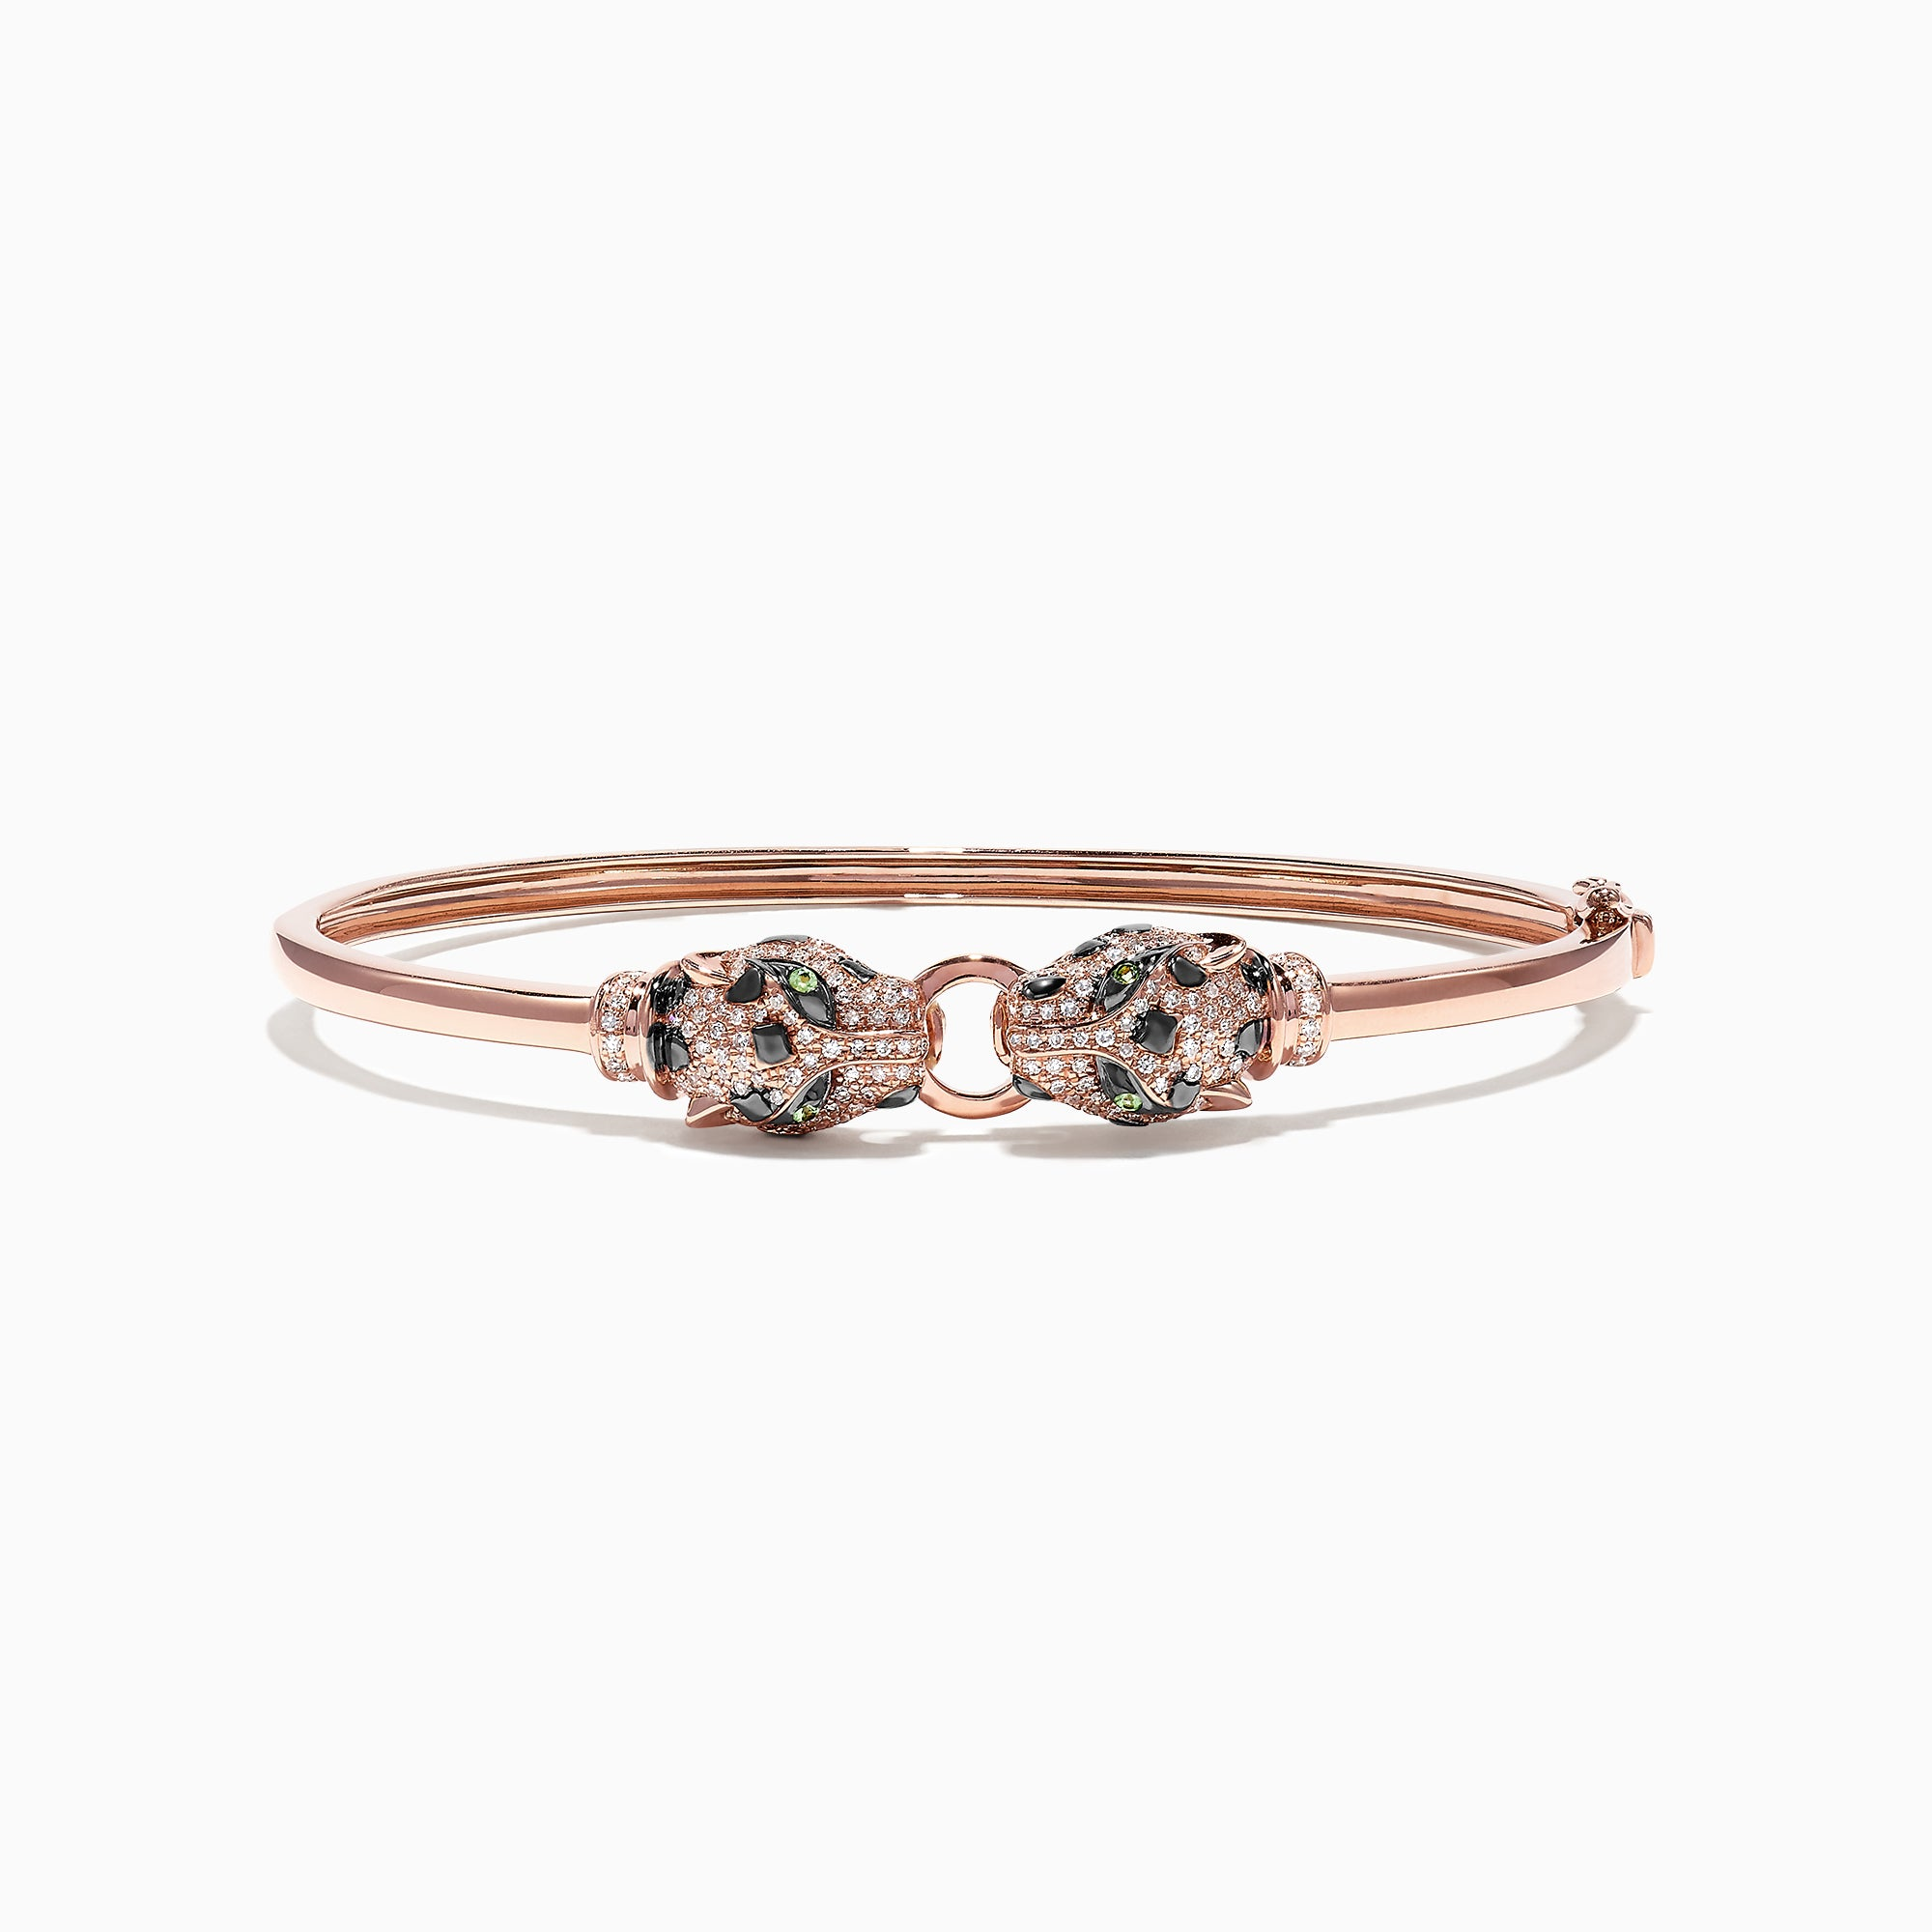 Effy Signature 14K Rose Gold Diamond and Tsavorite Bangle, 0.79 TCW